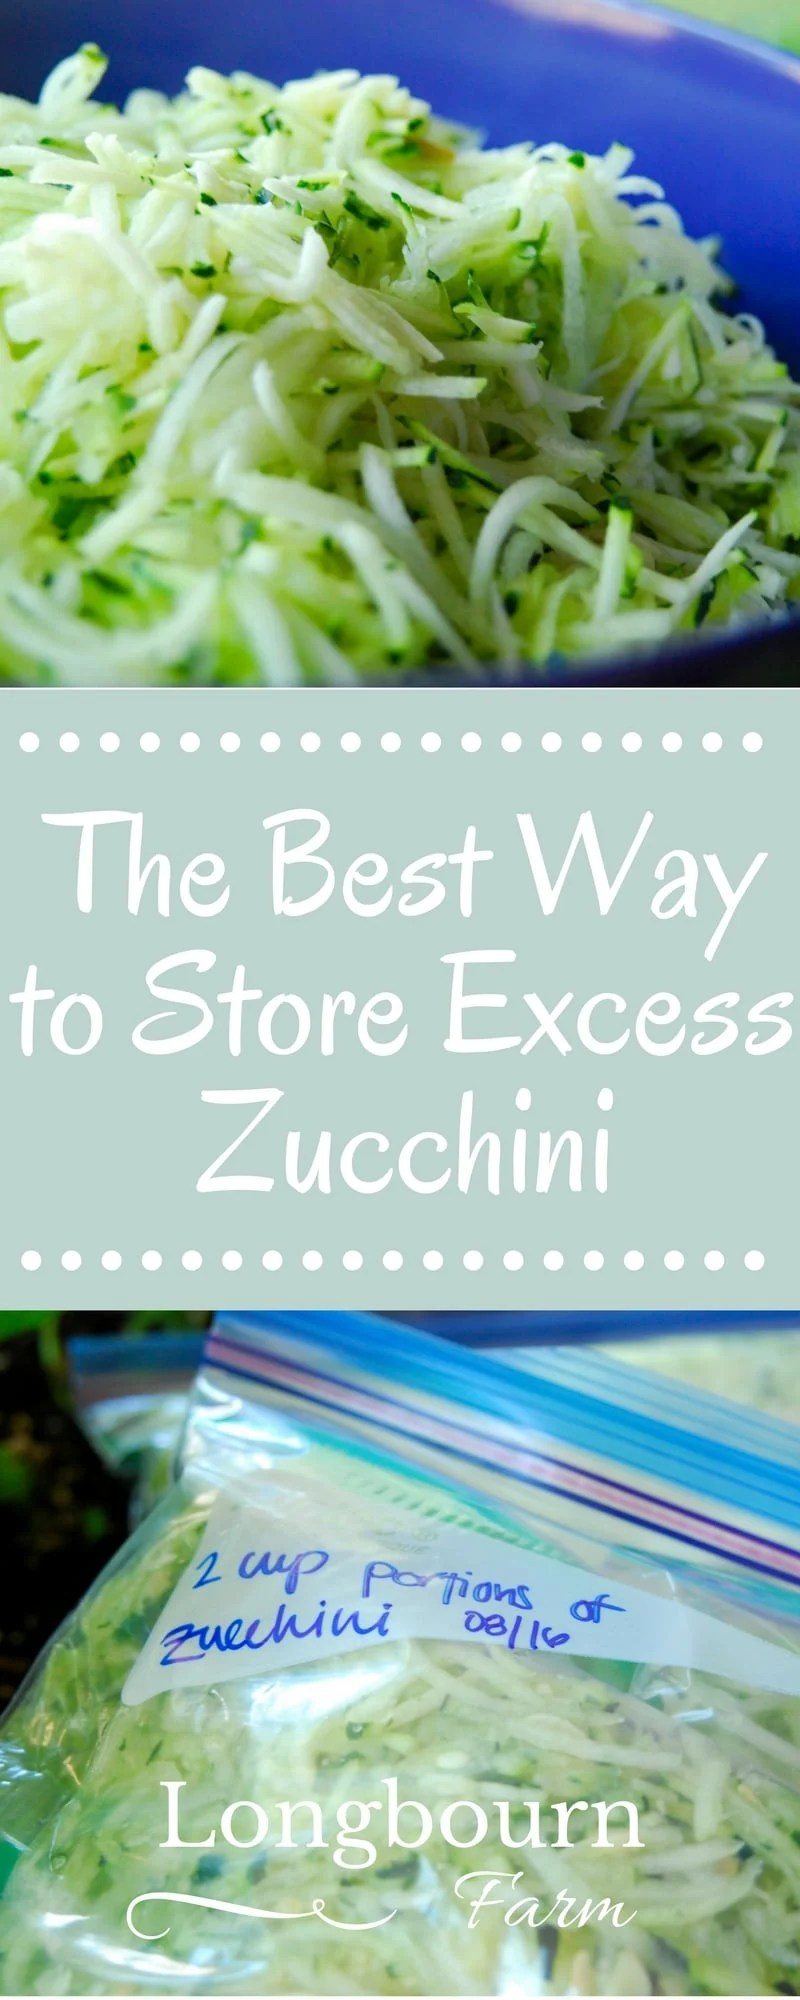 Find out the best way to store zucchini! Shredding and freezing it is the way to go! It's easy, fast, and lets you enjoy it all winter long.